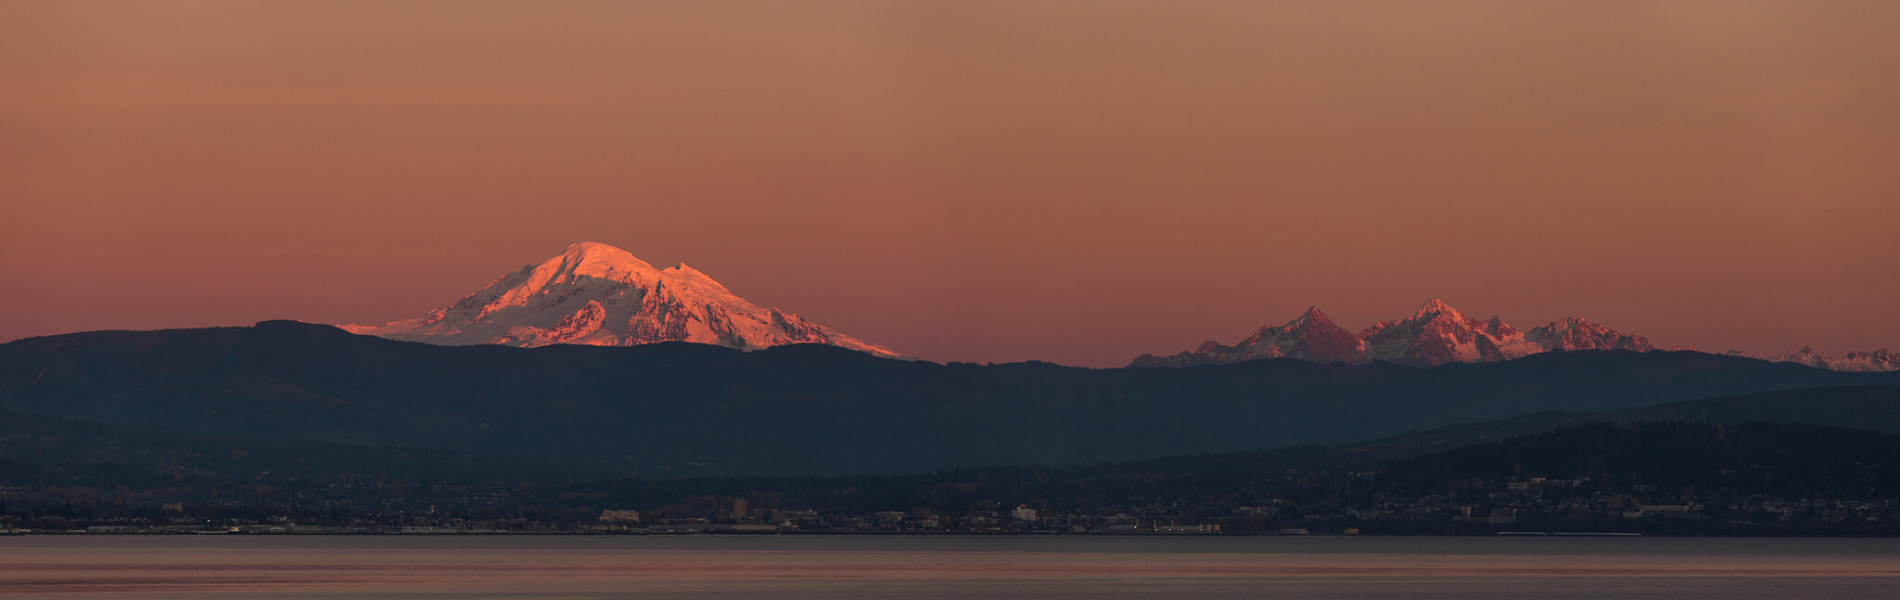 Mount Baker at Sunset